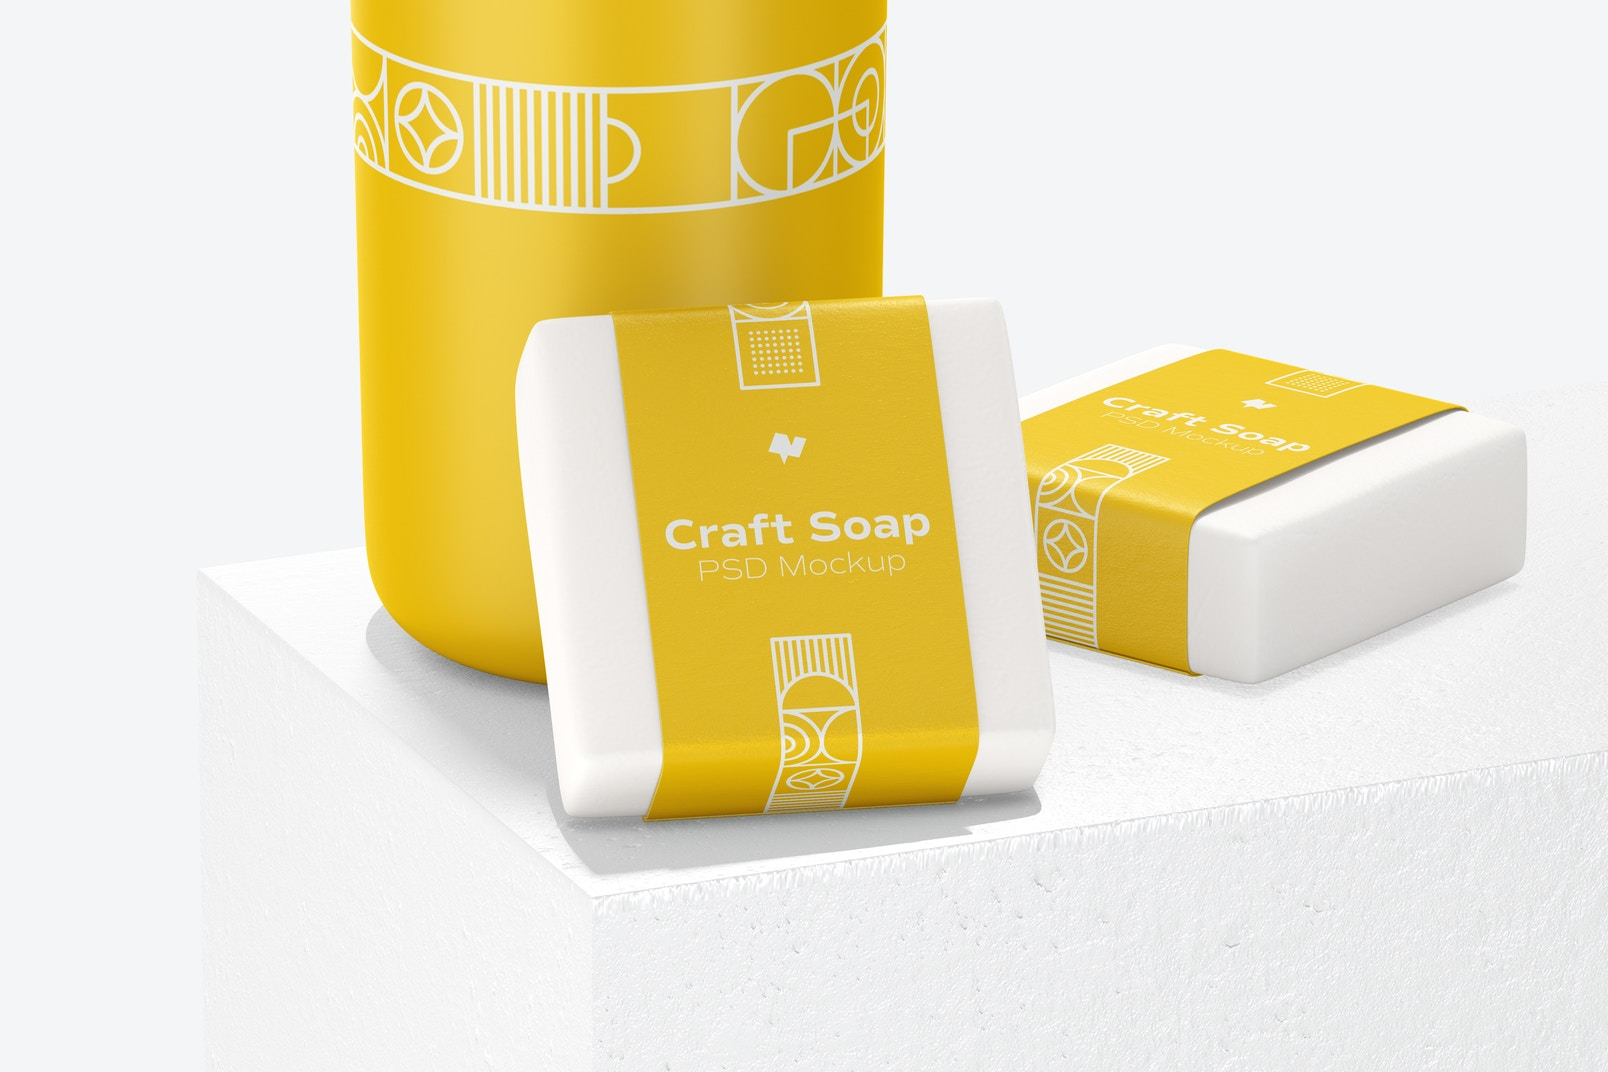 Craft Soap with Label Mockup with a Stone Stand